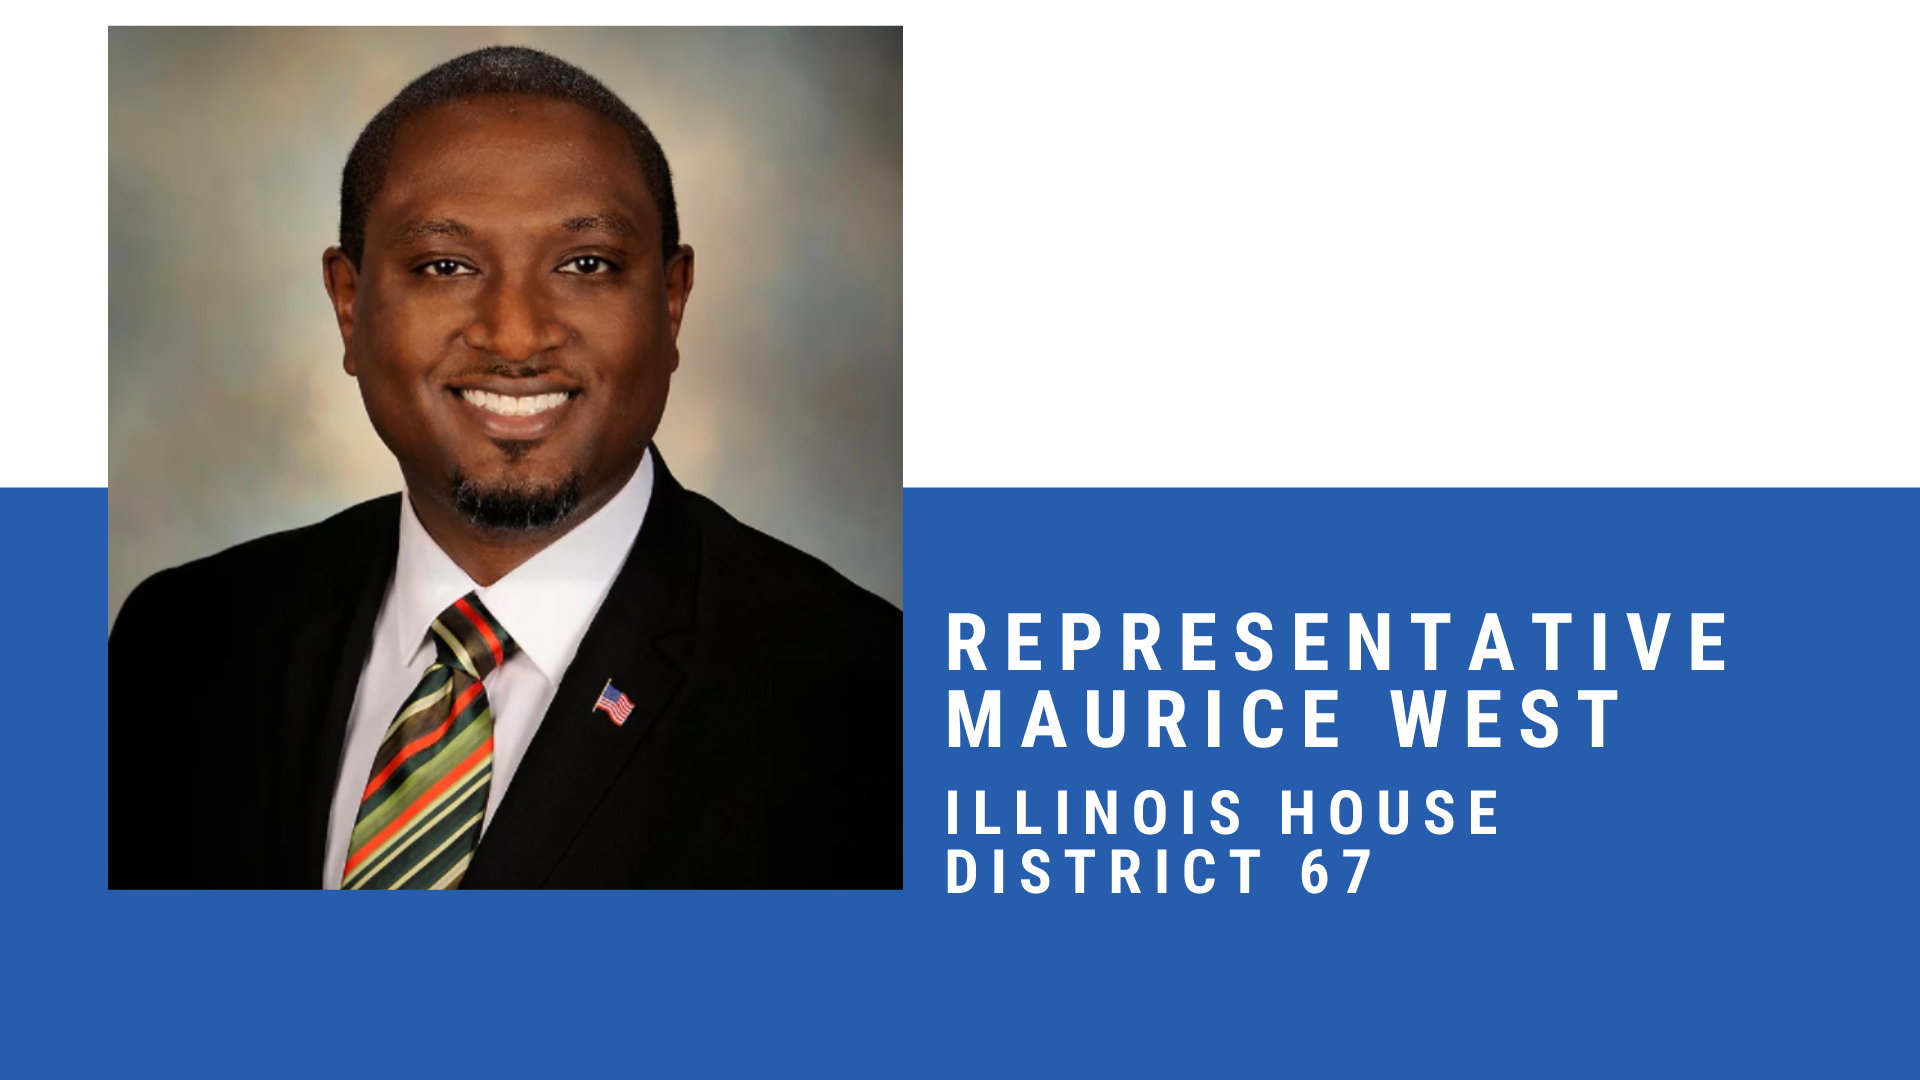 Representative Maurice West